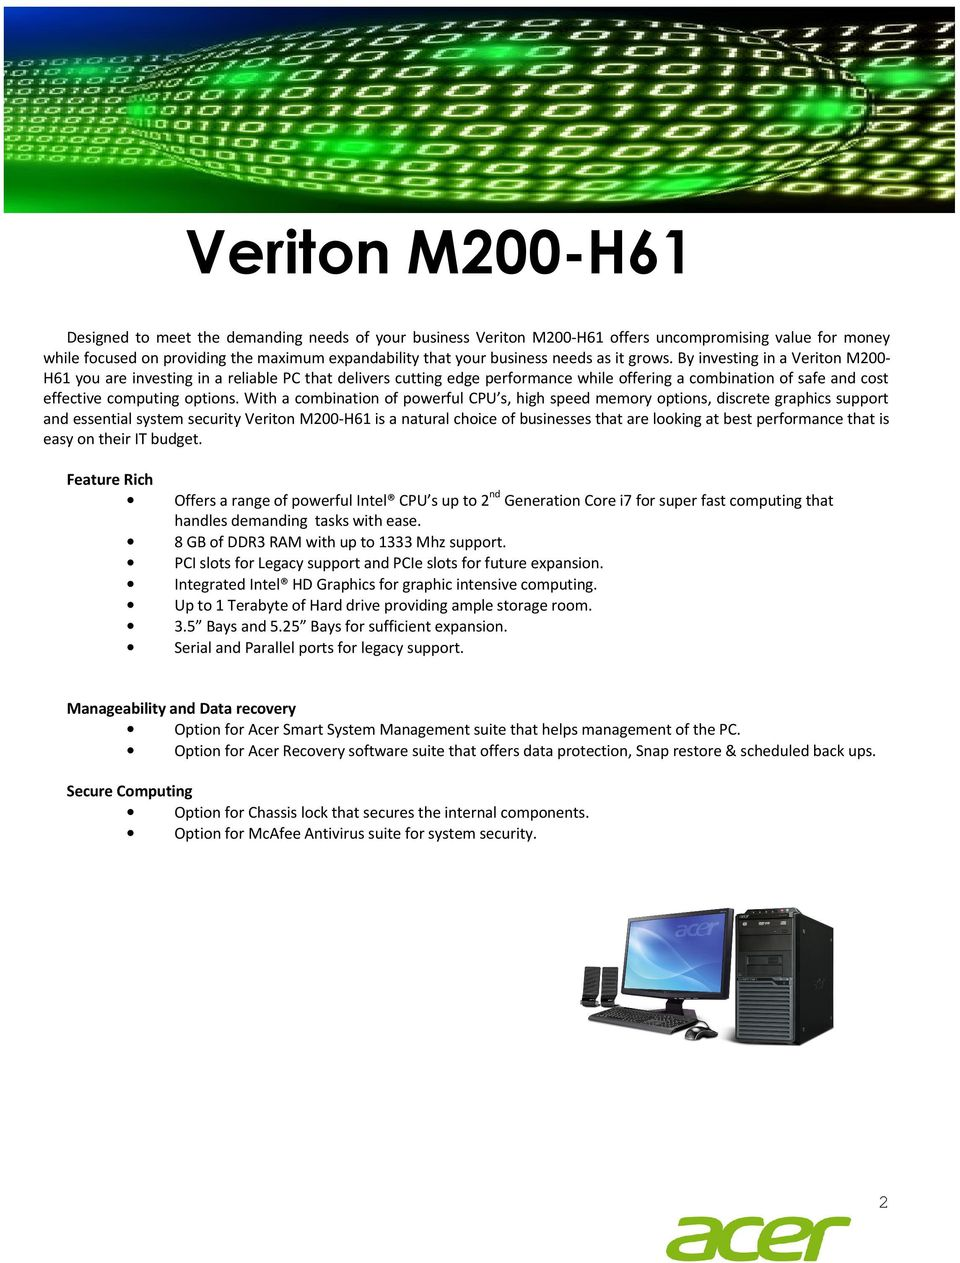 With a combination of powerful CPU s, high speed memory options, discrete graphics support and essential system security Veriton M200-H61 is a natural choice of businesses that are looking at best